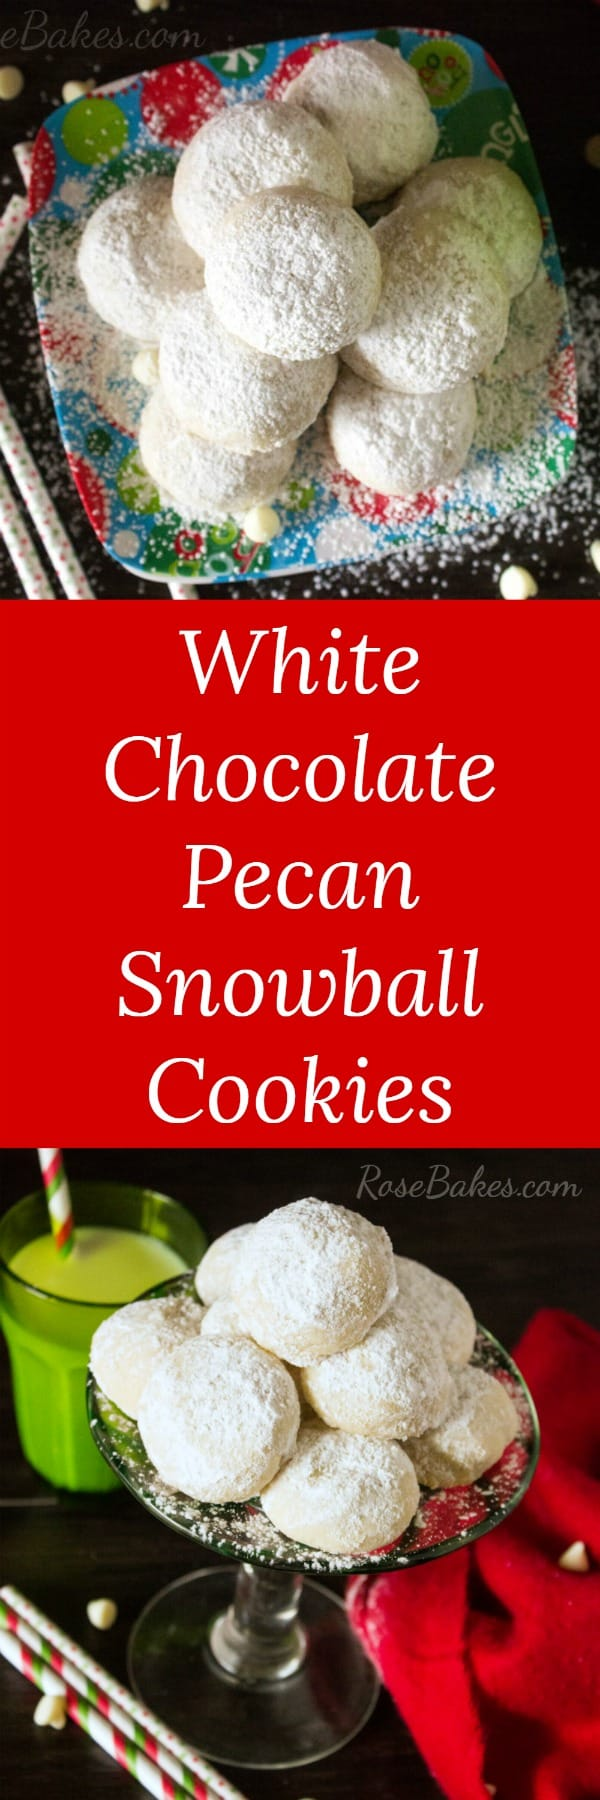 White Chocolate Pecan Snowball Cookies by RoseBakes